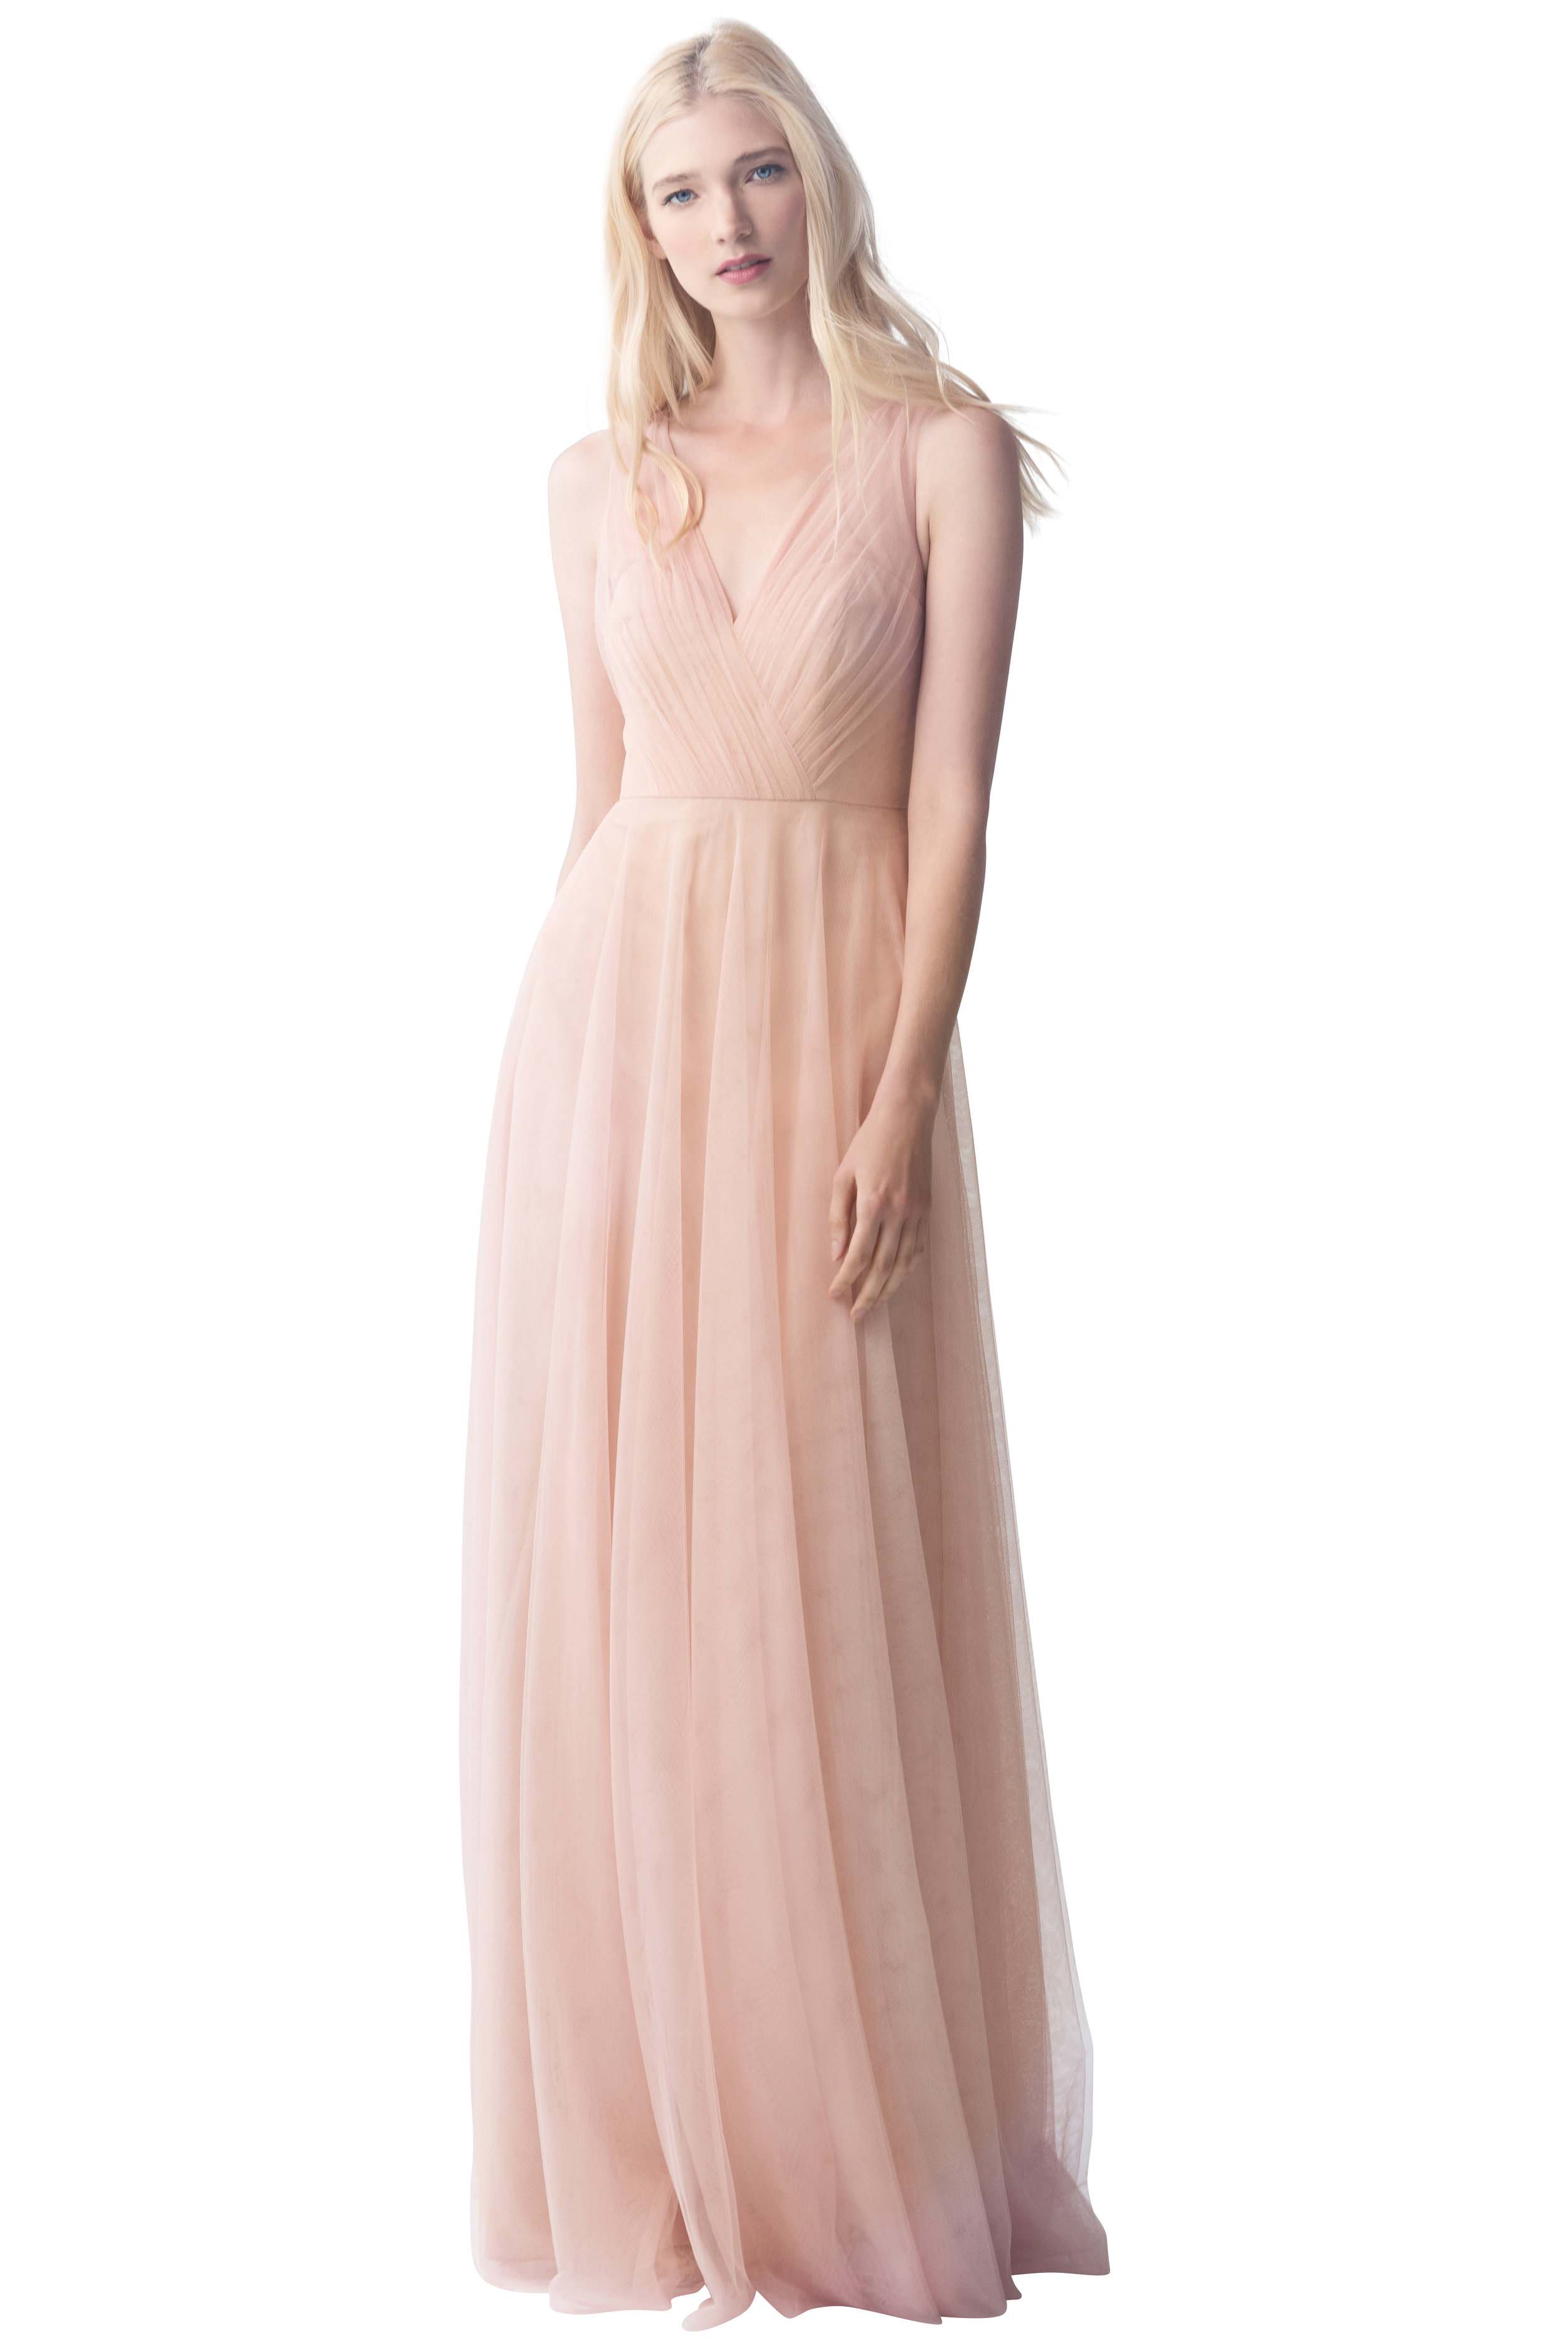 Jenny Yoo 'Emelie' Cameo Pink Tulle -